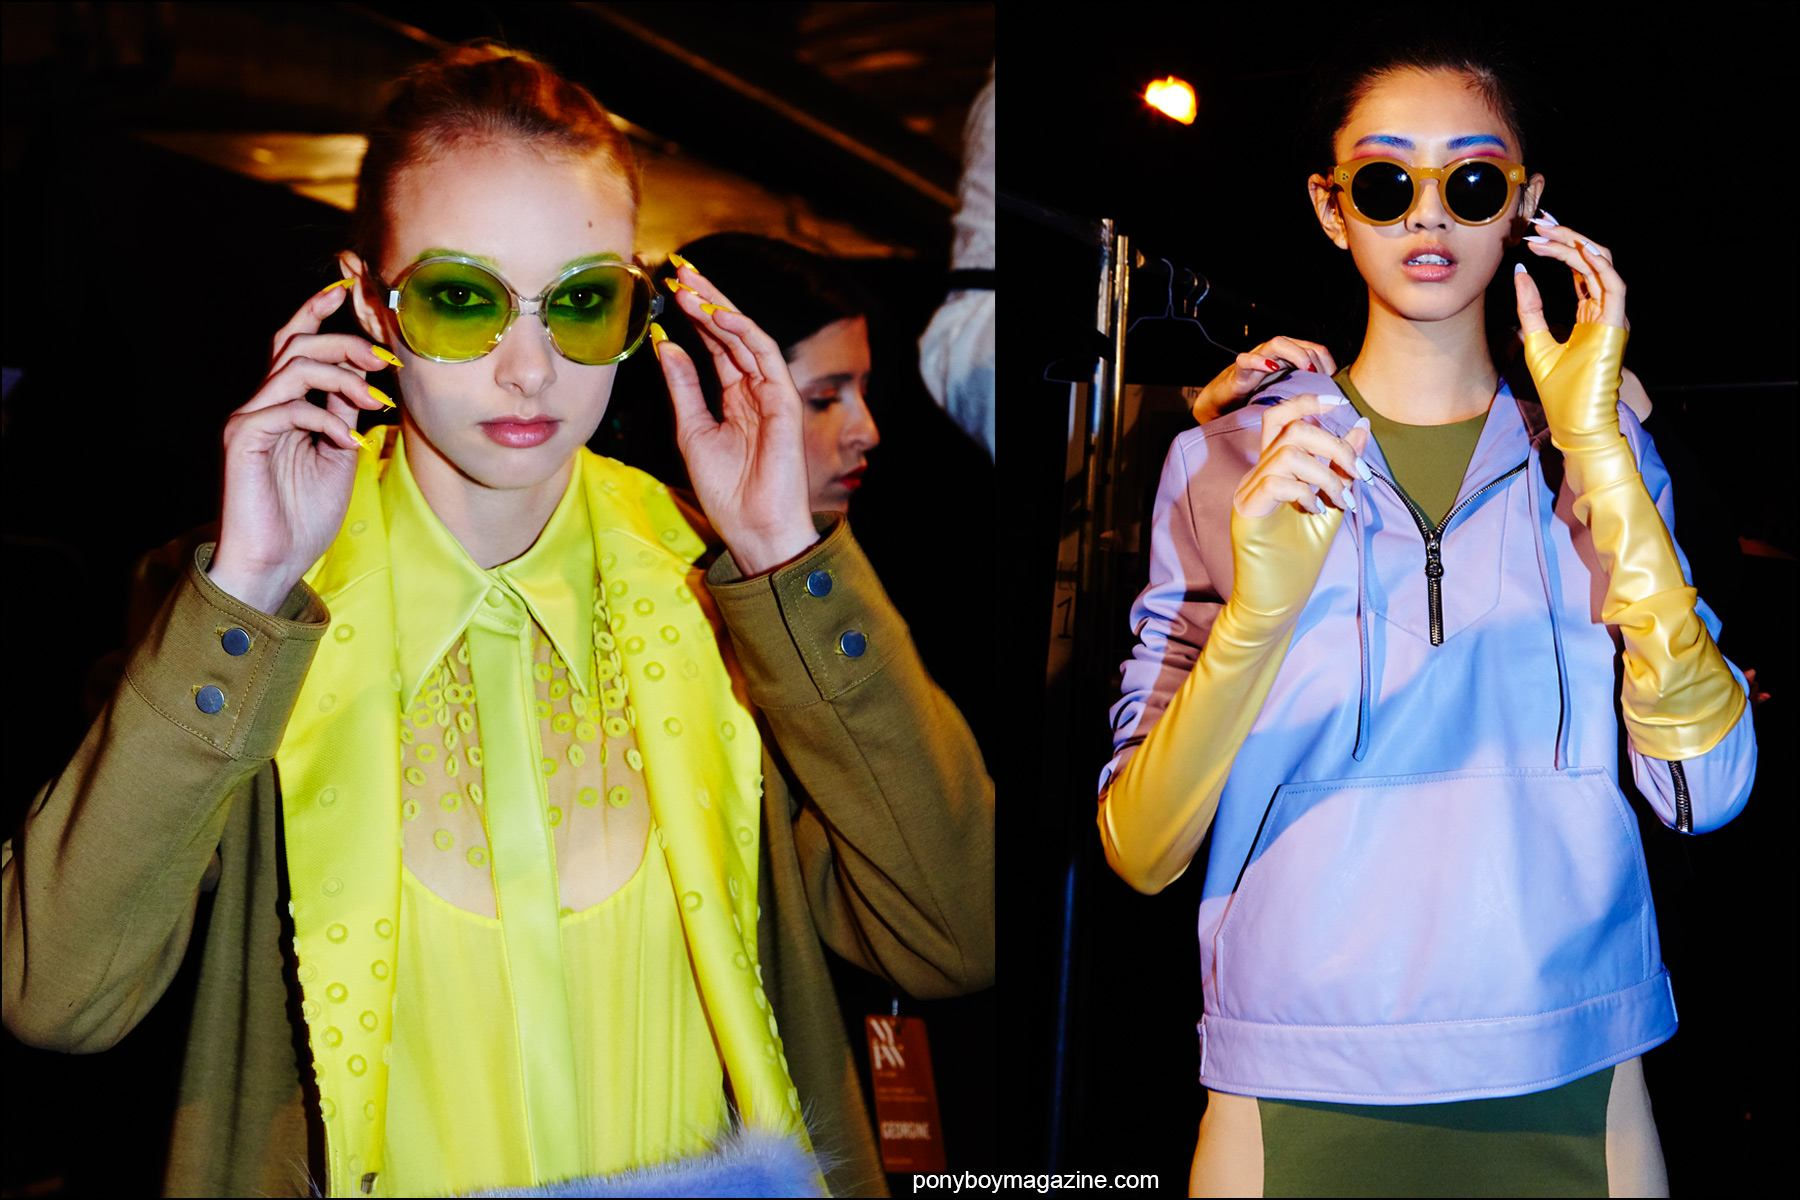 Models adjust their sunglasses, backstage at Georgine Spring/Summer 2016 womenswear collection. Photography by Alexander Thompson for Ponyboy magazine NY.